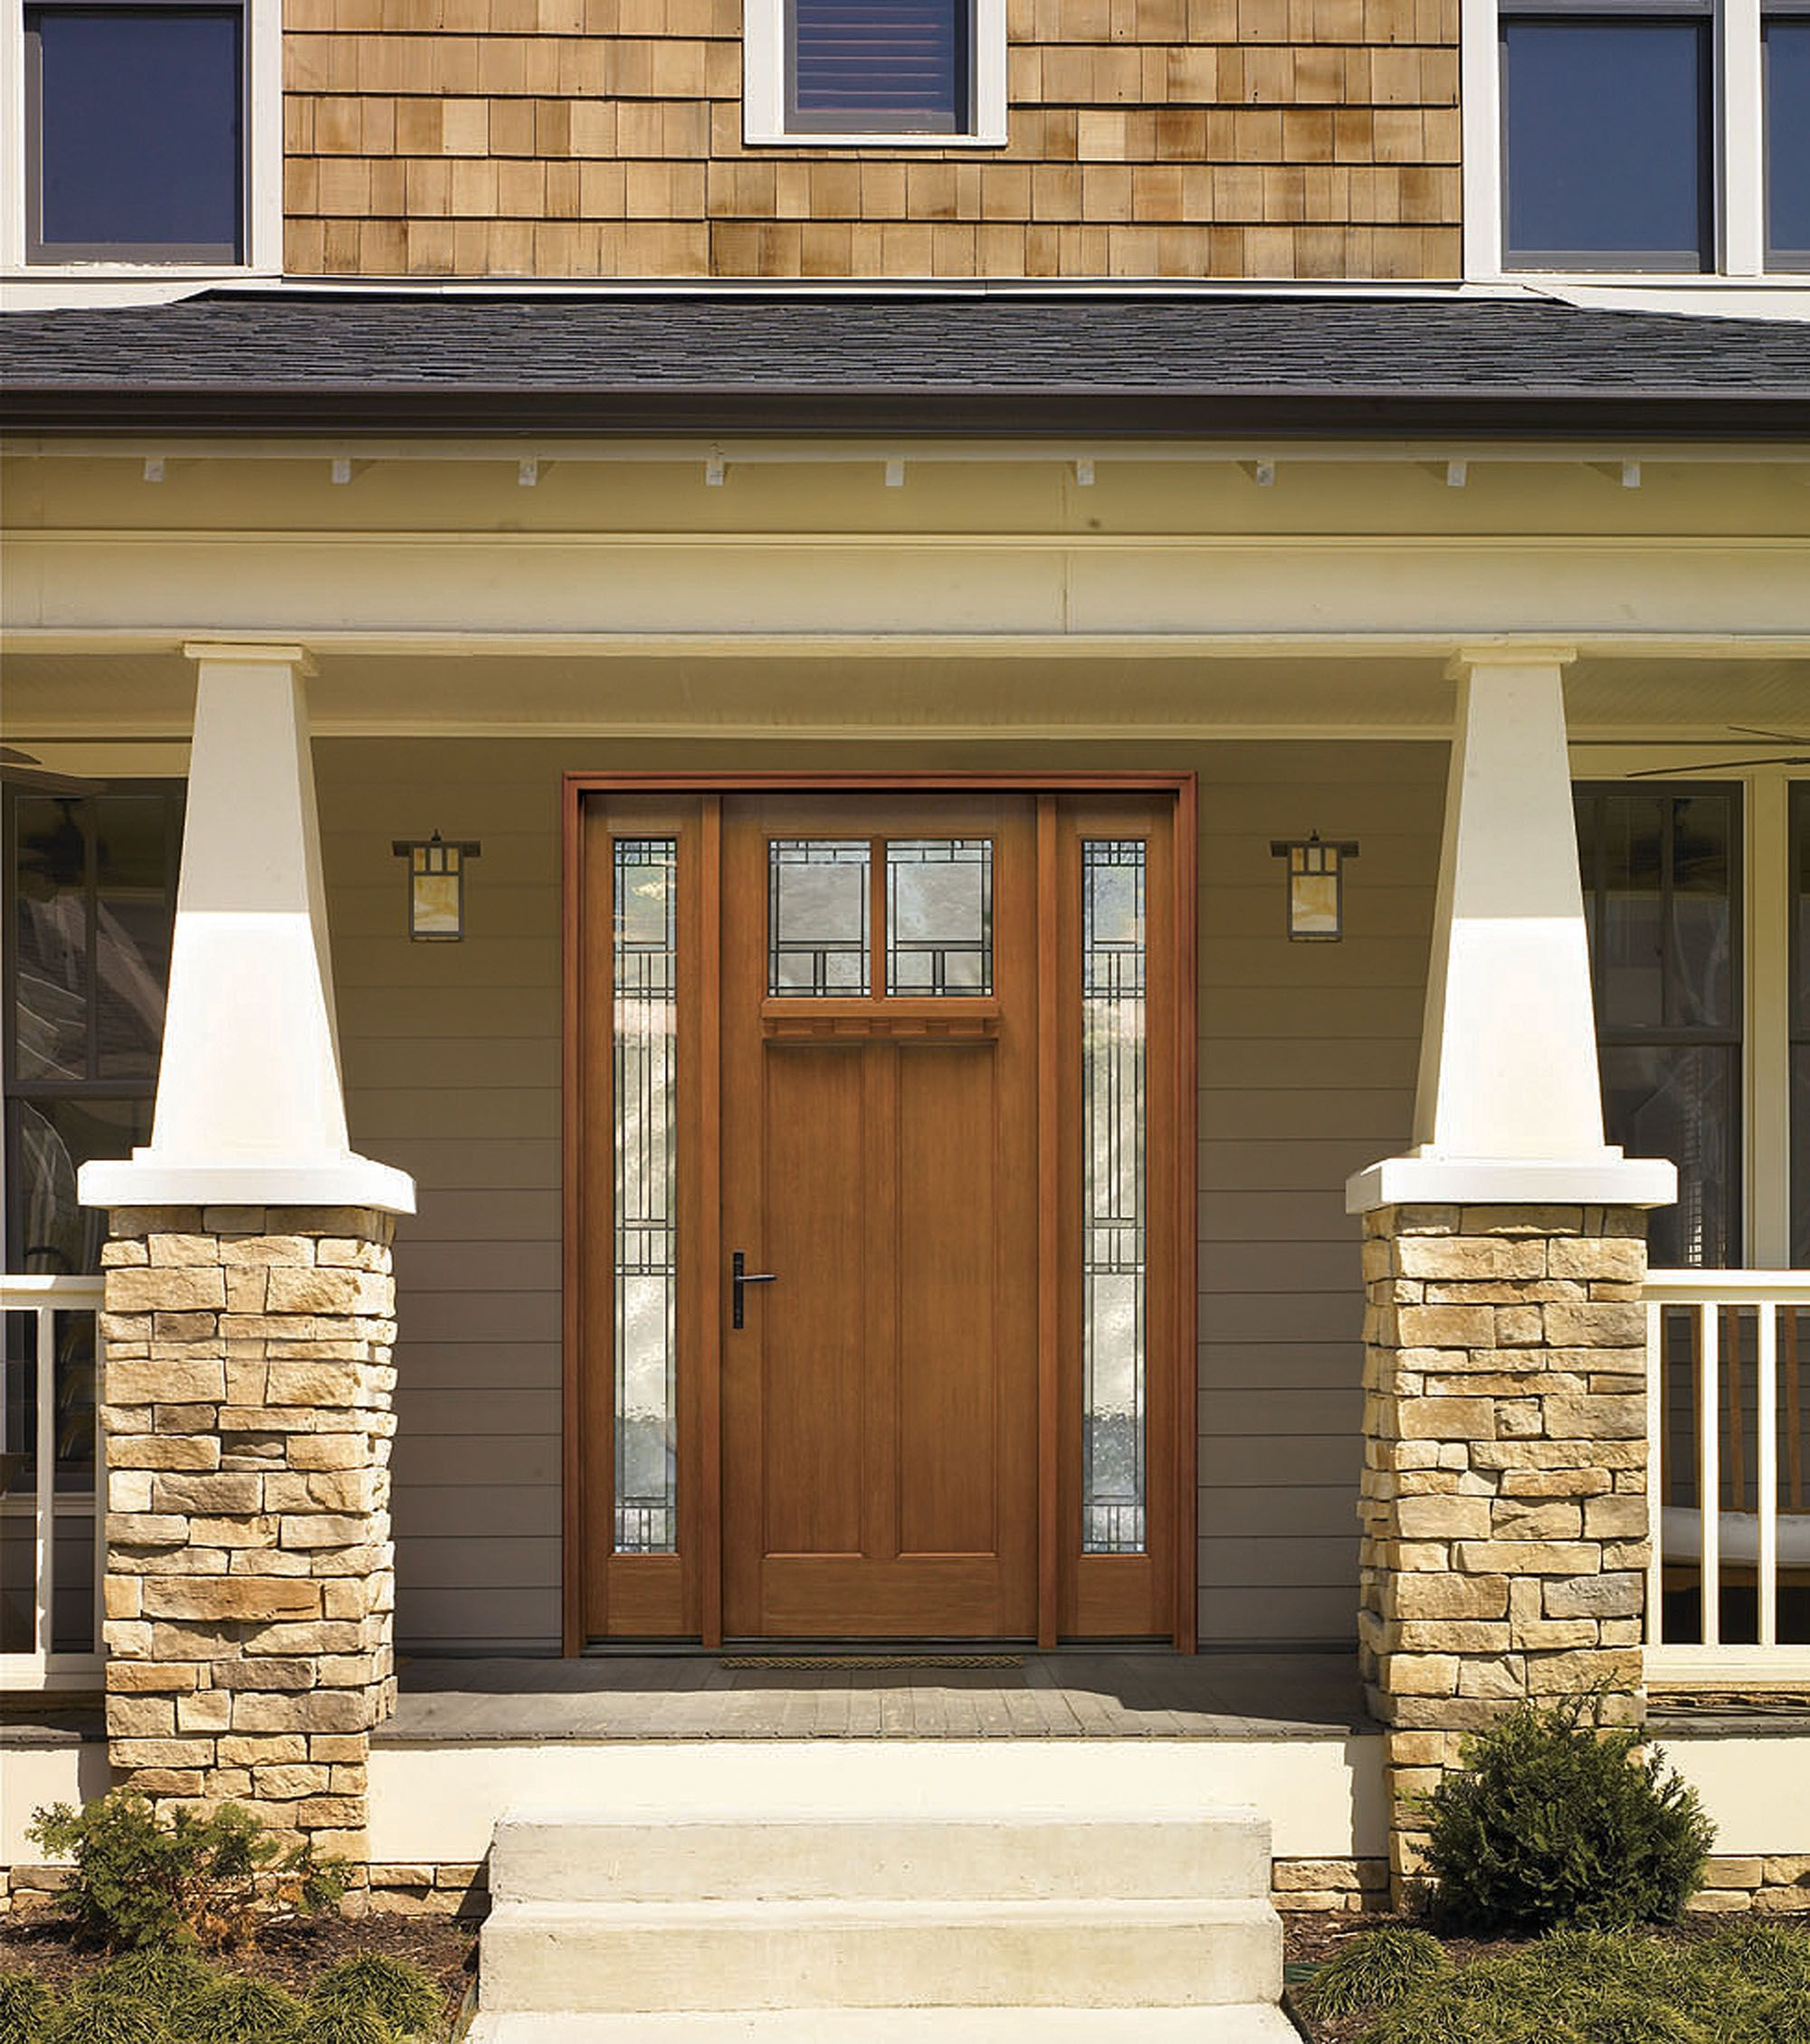 Classic craft american style collection fiberglass door for Therma tru classic craft american style collection